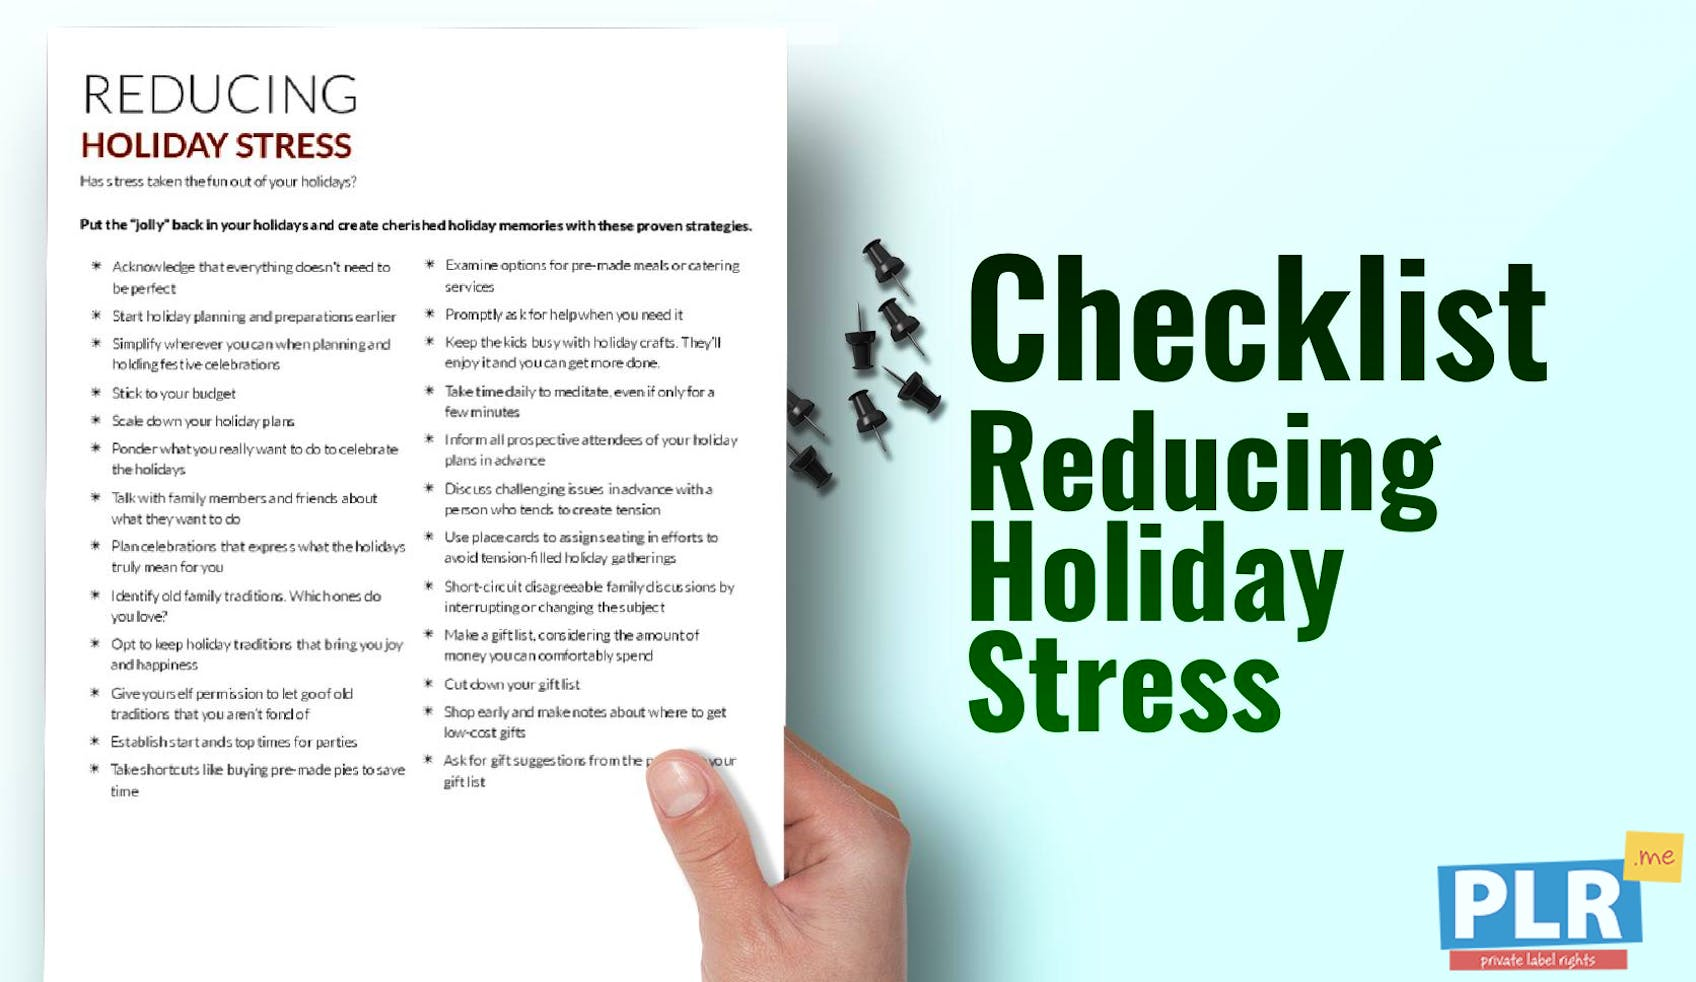 Reducing Holiday Stress